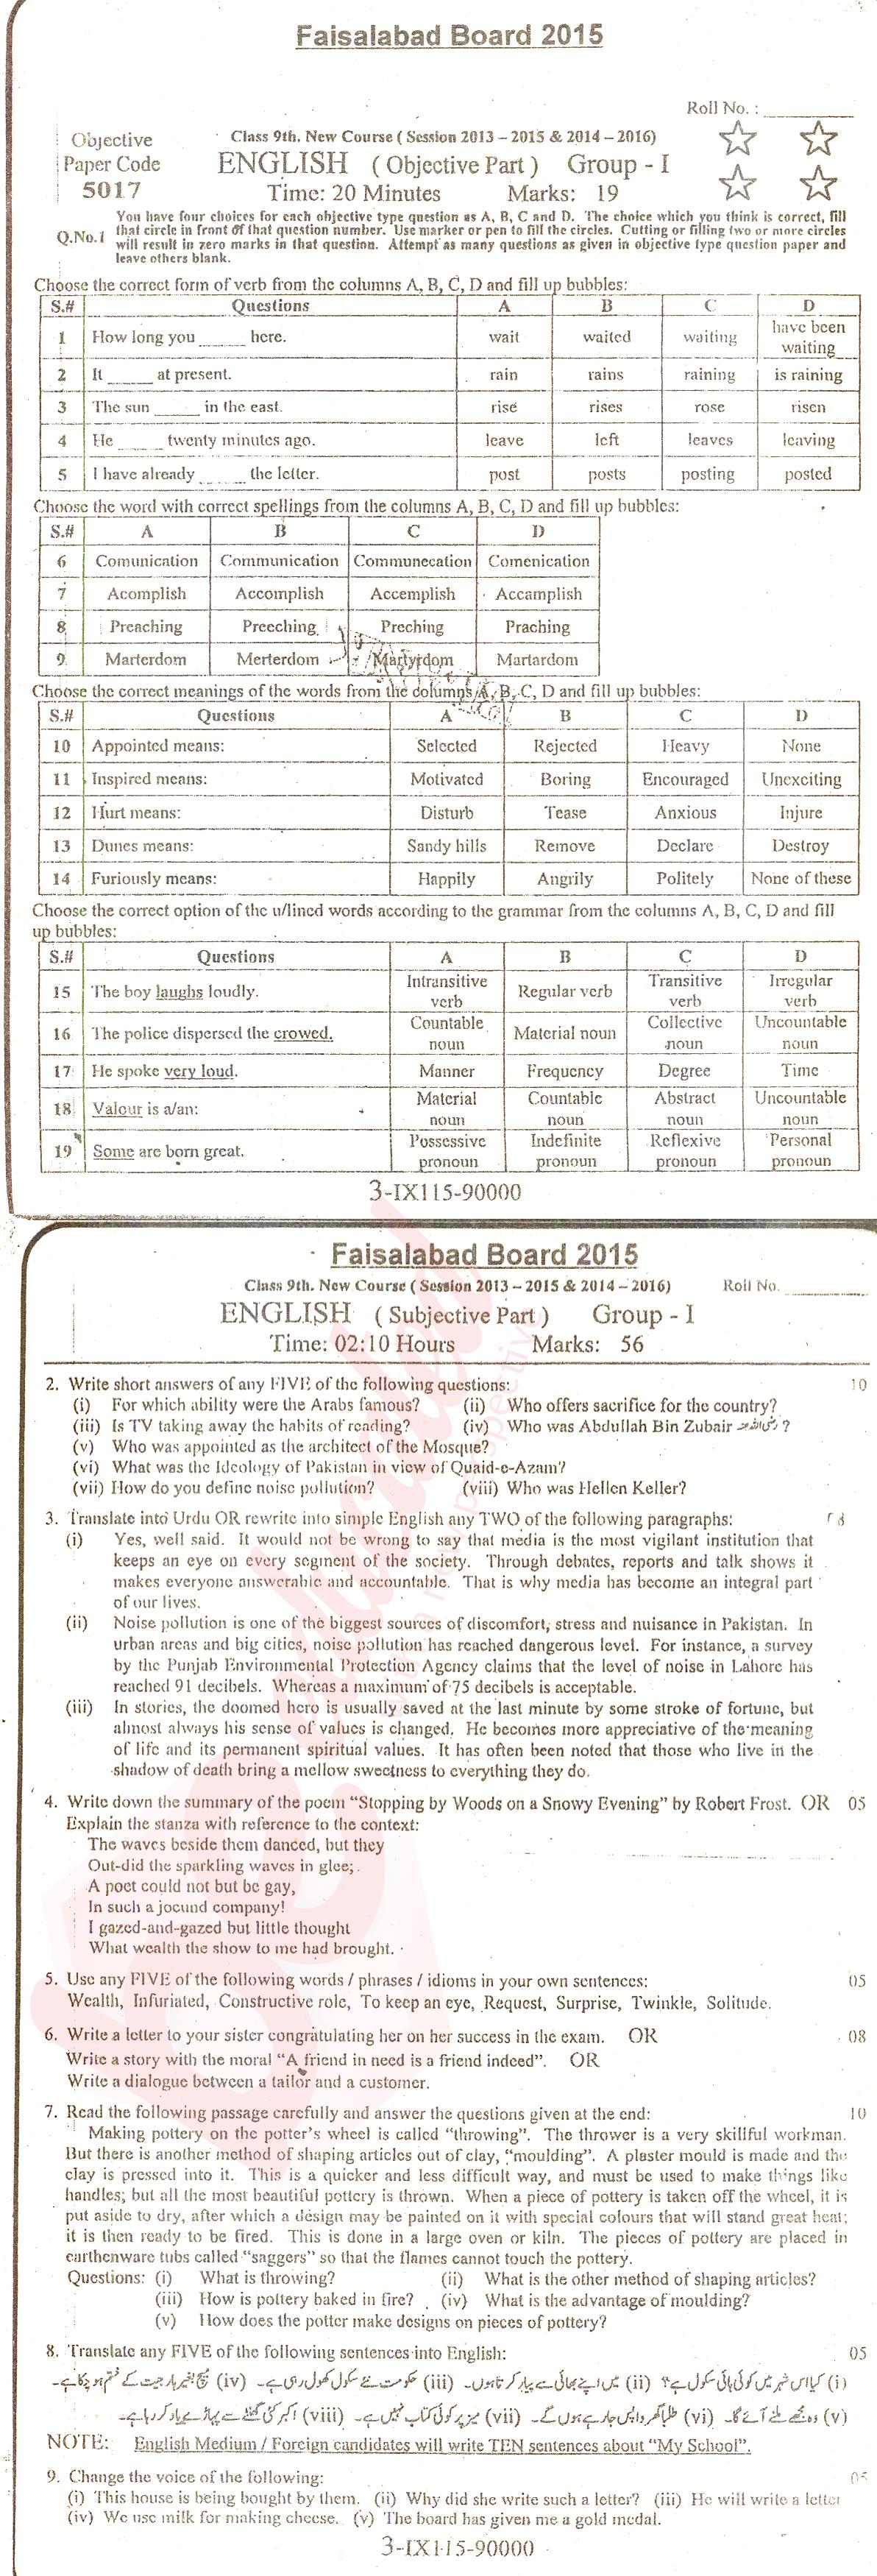 english papers for class 9 Class 9 app contains all subjects - science, maths, english, social science, sanskrit, computer science, information technology, hindi, geography sample question papers and question banks with solutions for last year papers.